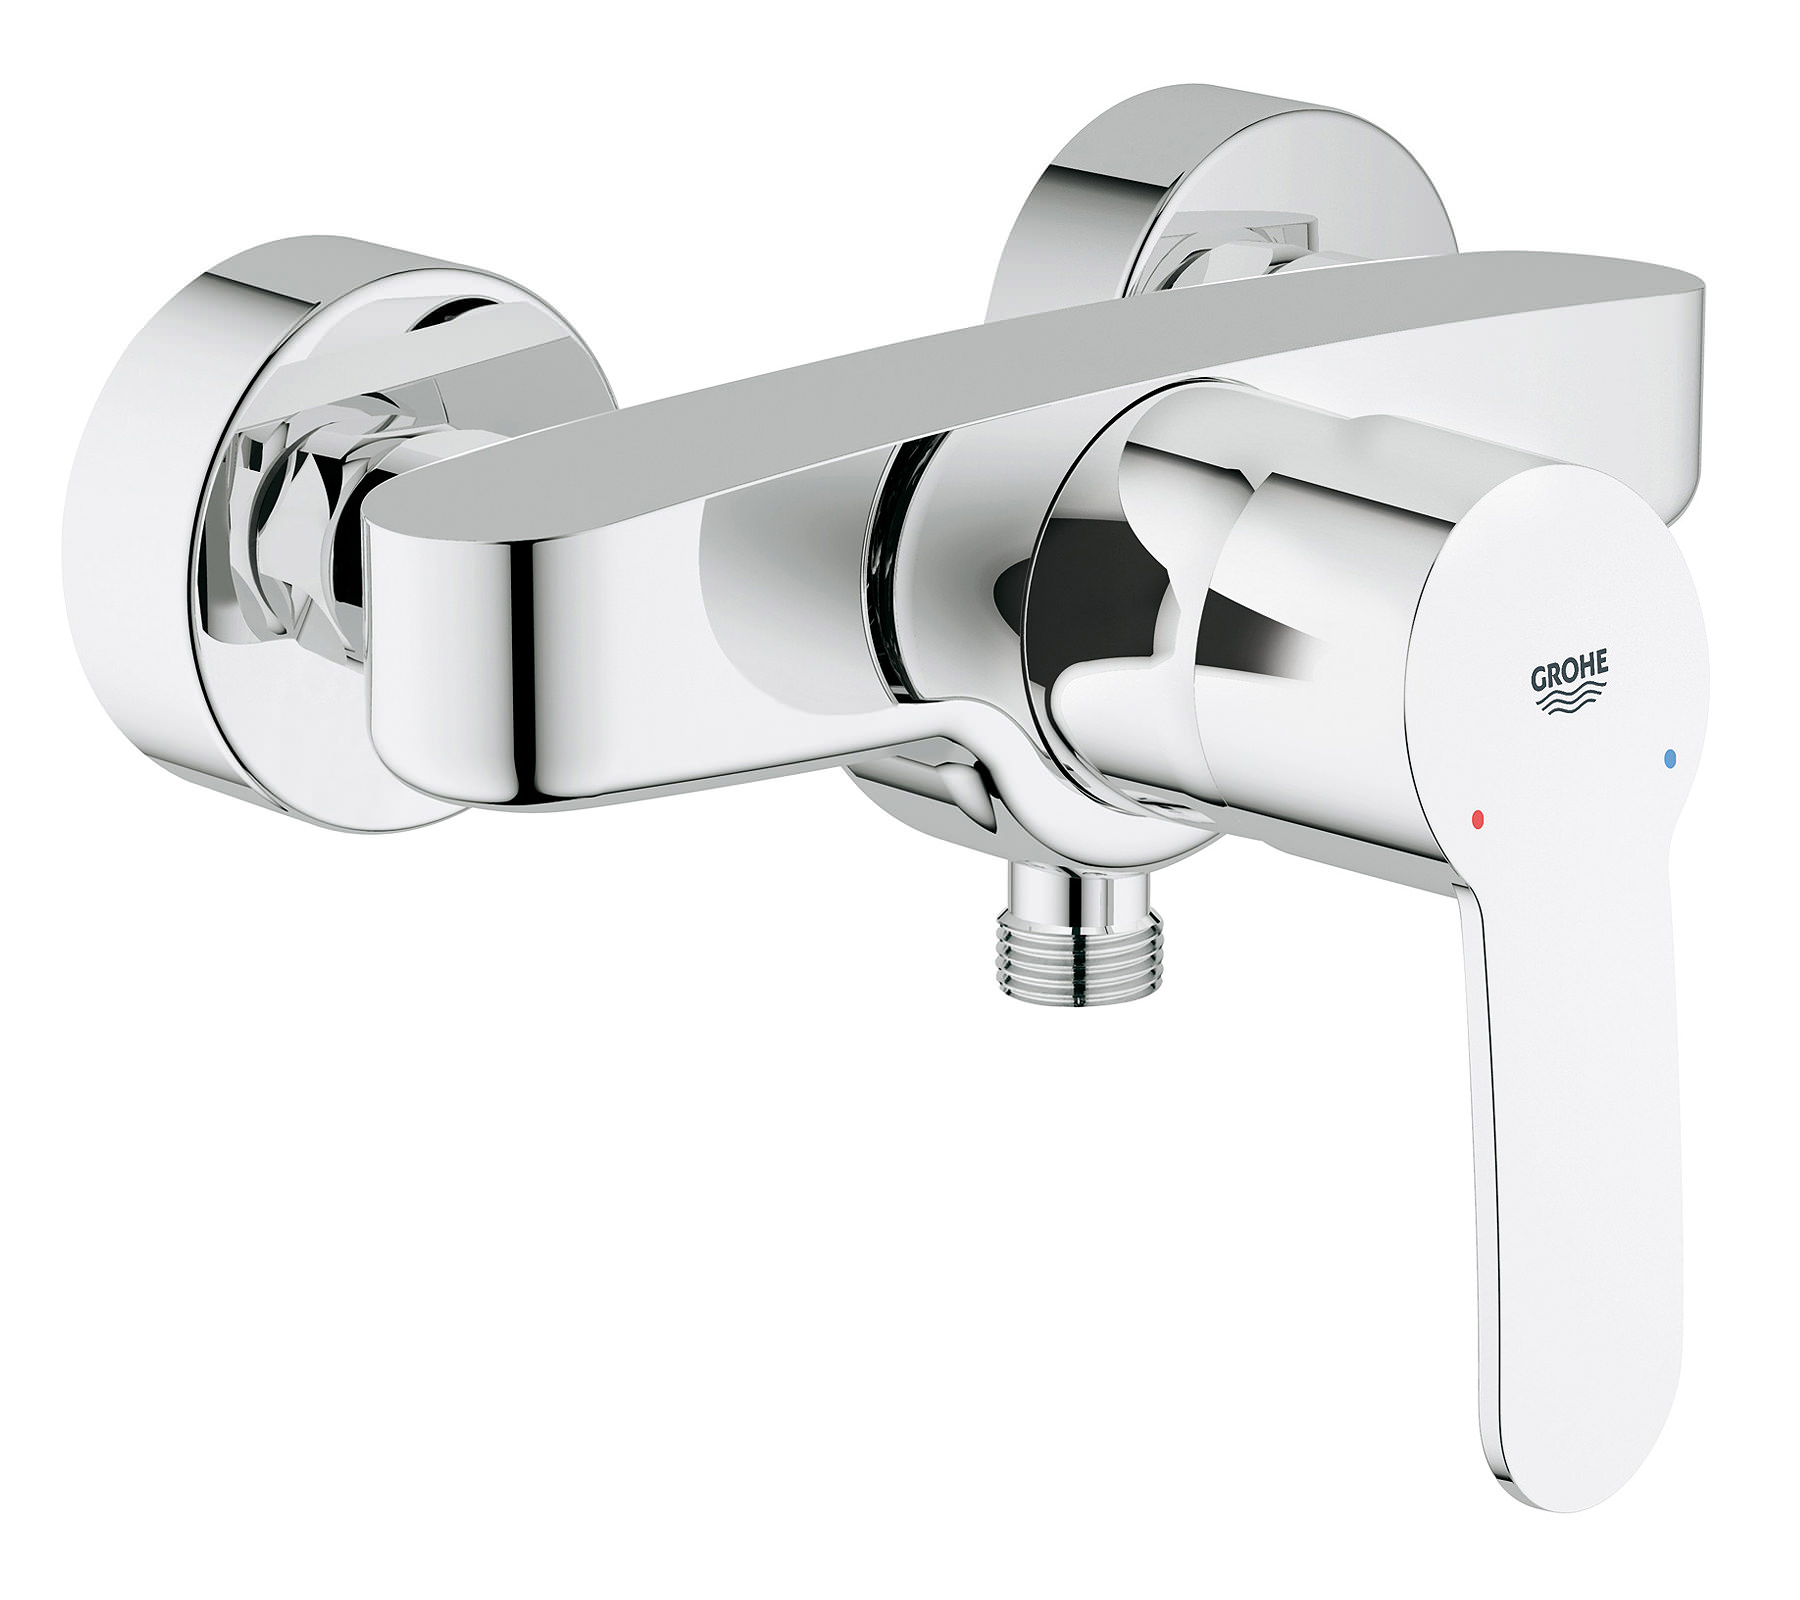 Grohe Eurostyle Cosmo Wall Mounted Shower Mixer Valve - 33590002